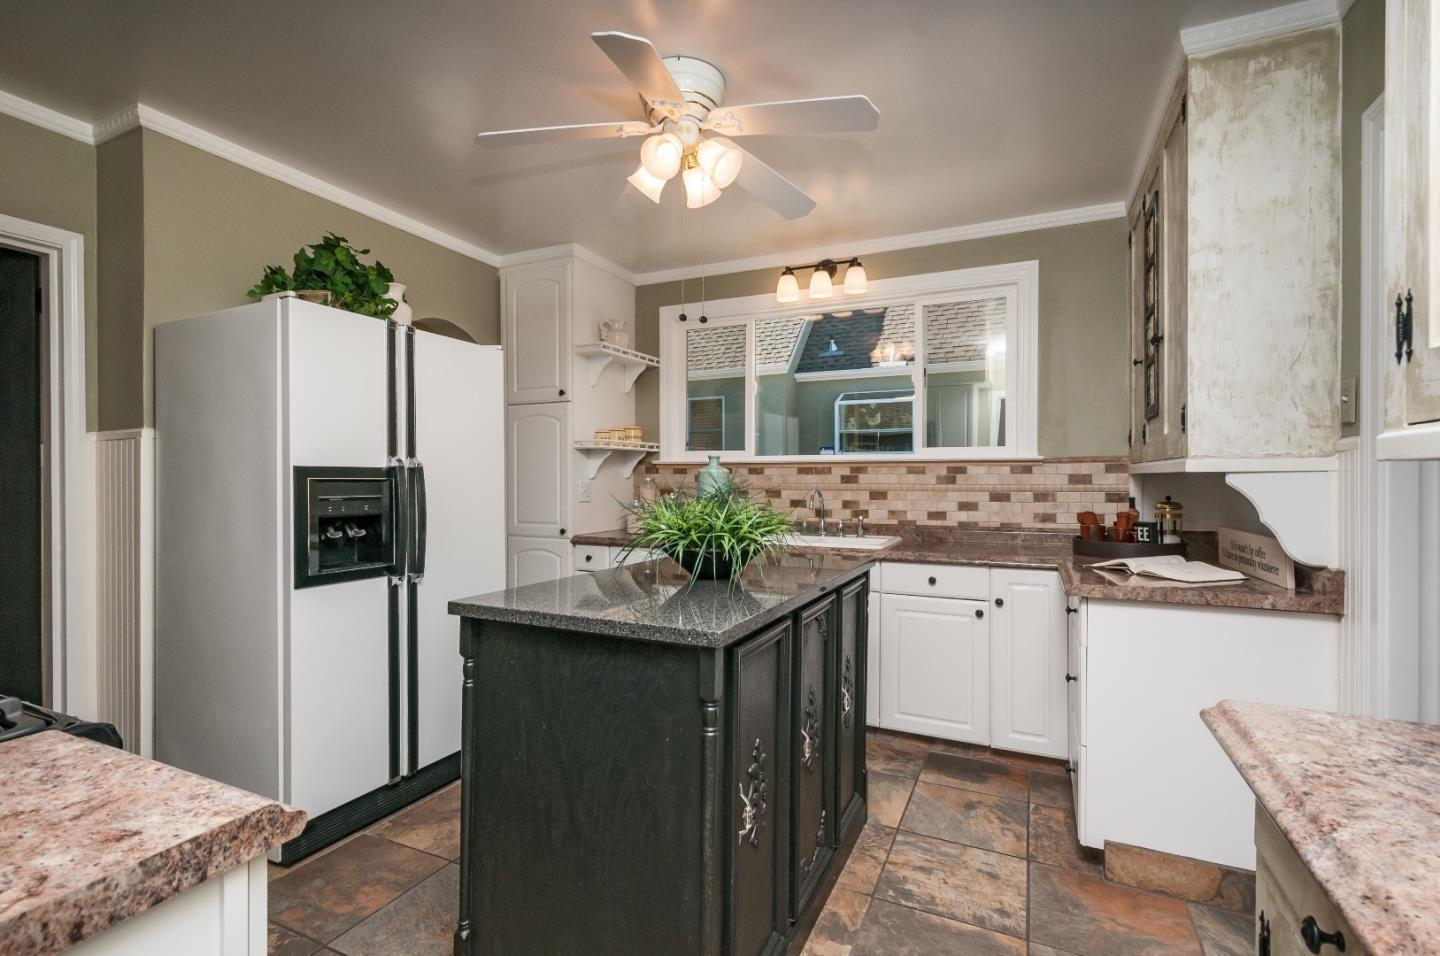 Additional photo for property listing at 258 Lowell St  REDWOOD CITY, CALIFORNIA 94062